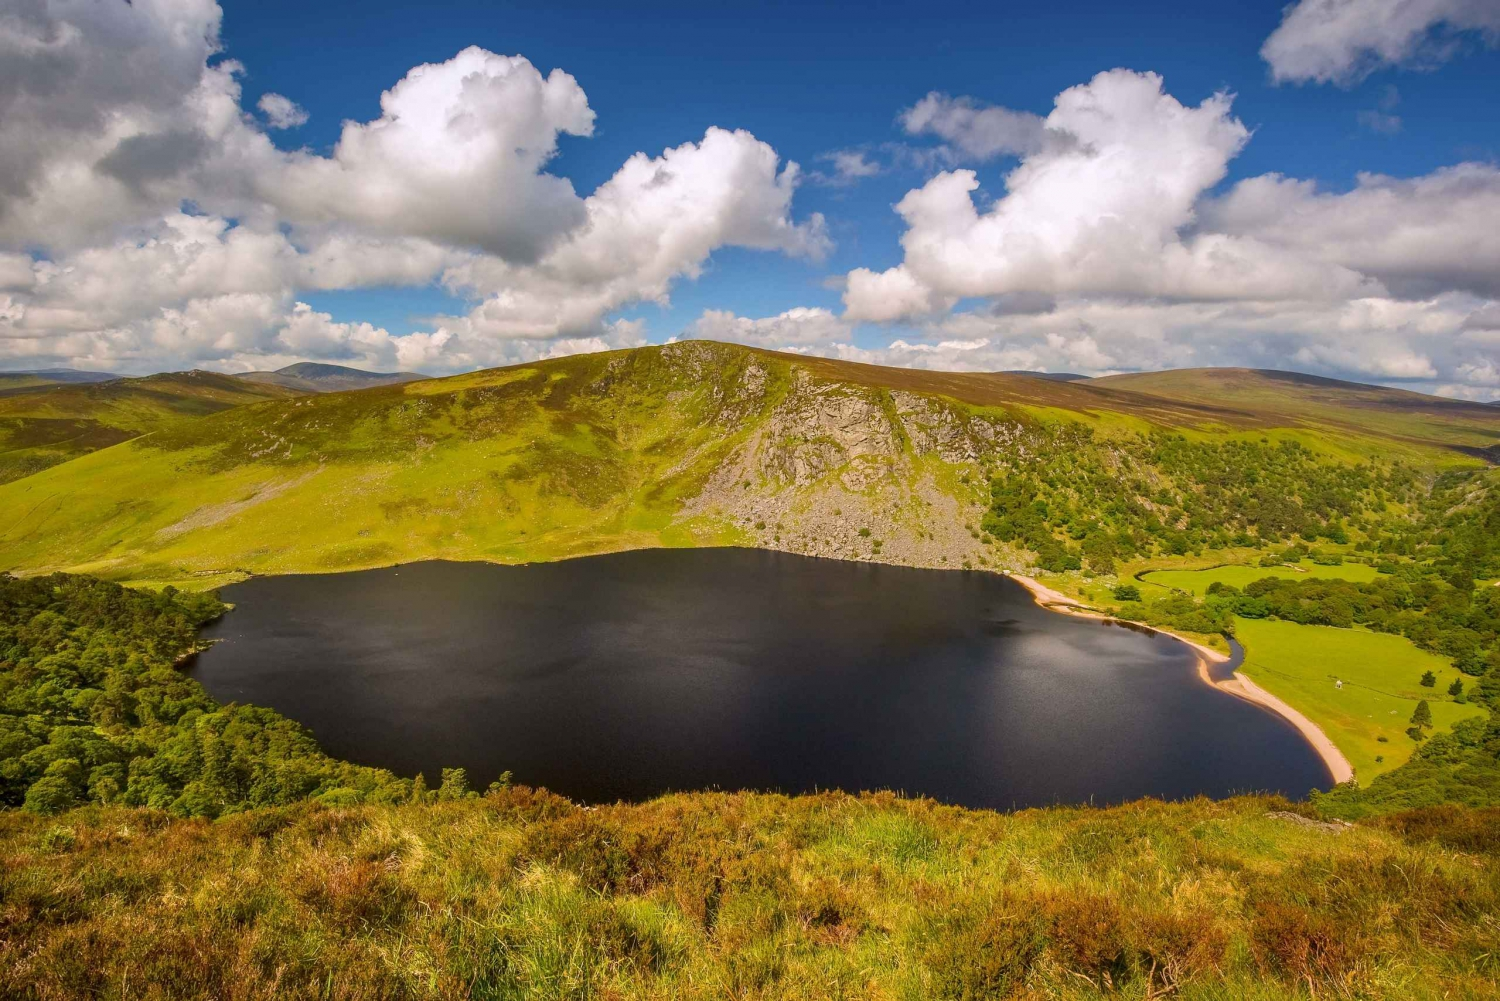 Tour to Wicklow Mountains and Glendalough from Dublin